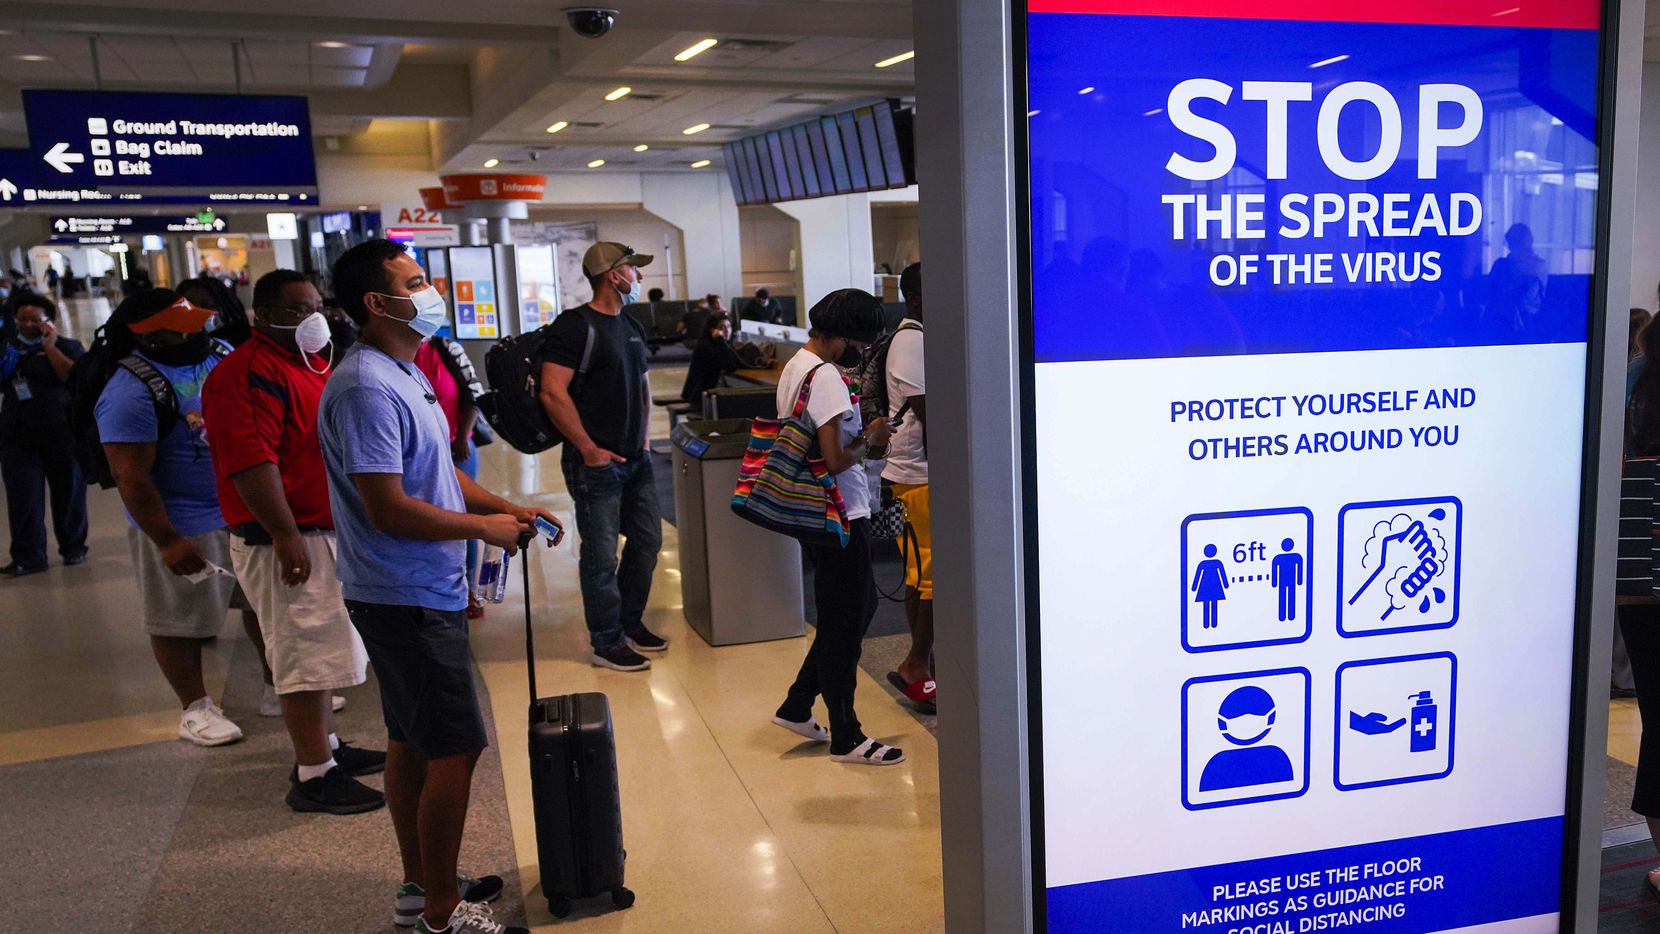 A message board displays a public health notice of precautions against the spread of COVID-19 as passengers wait to board an American Airlines flight at DFW International Airport Terminal A on Tuesday, June 30, 2020.